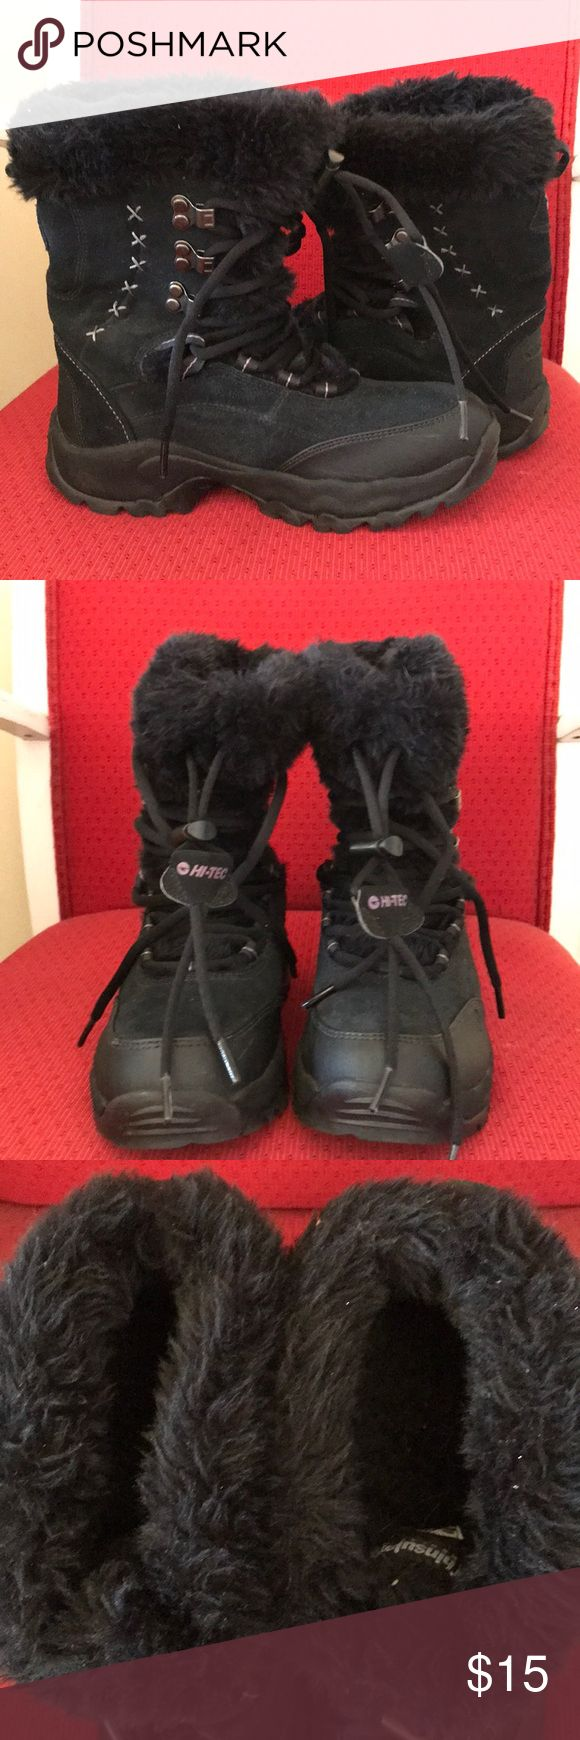 HI-TEC snow boots Excellent condition clean inside out snow boots from HI-TEC. Definitely a must for the winter. Soles in excellent condition. With very minor dirt/scratch and hardly noticeable ( see  7th pic) Hi-Tec Shoes Winter & Rain Boots